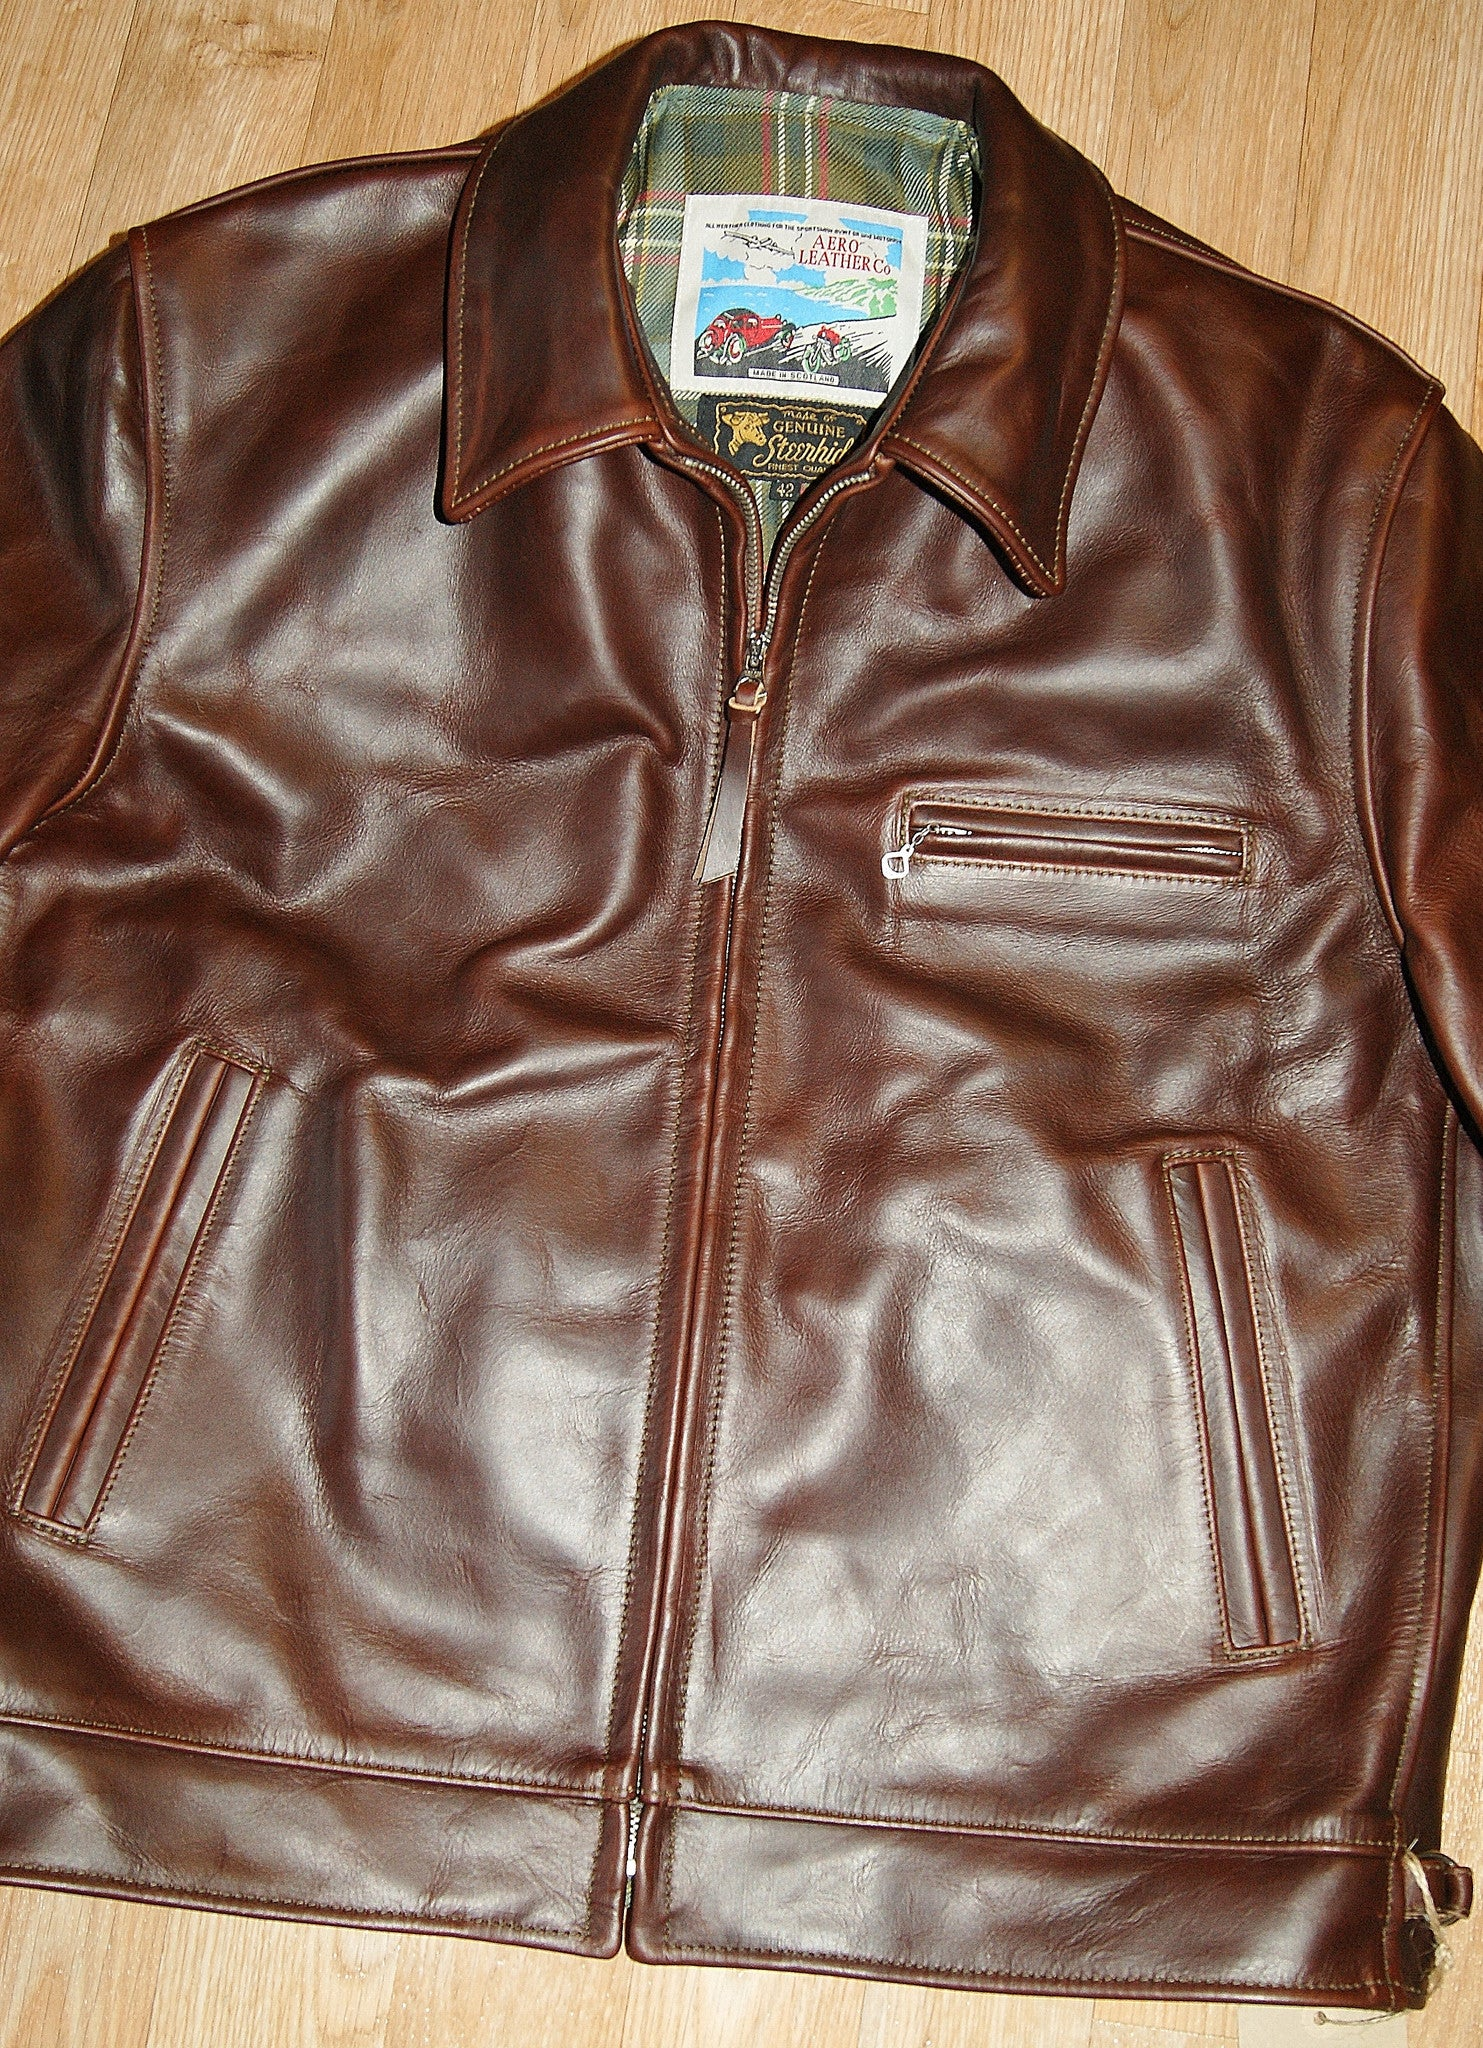 Aero Highwayman, sz 42, Brown Chromexcel Steerhide